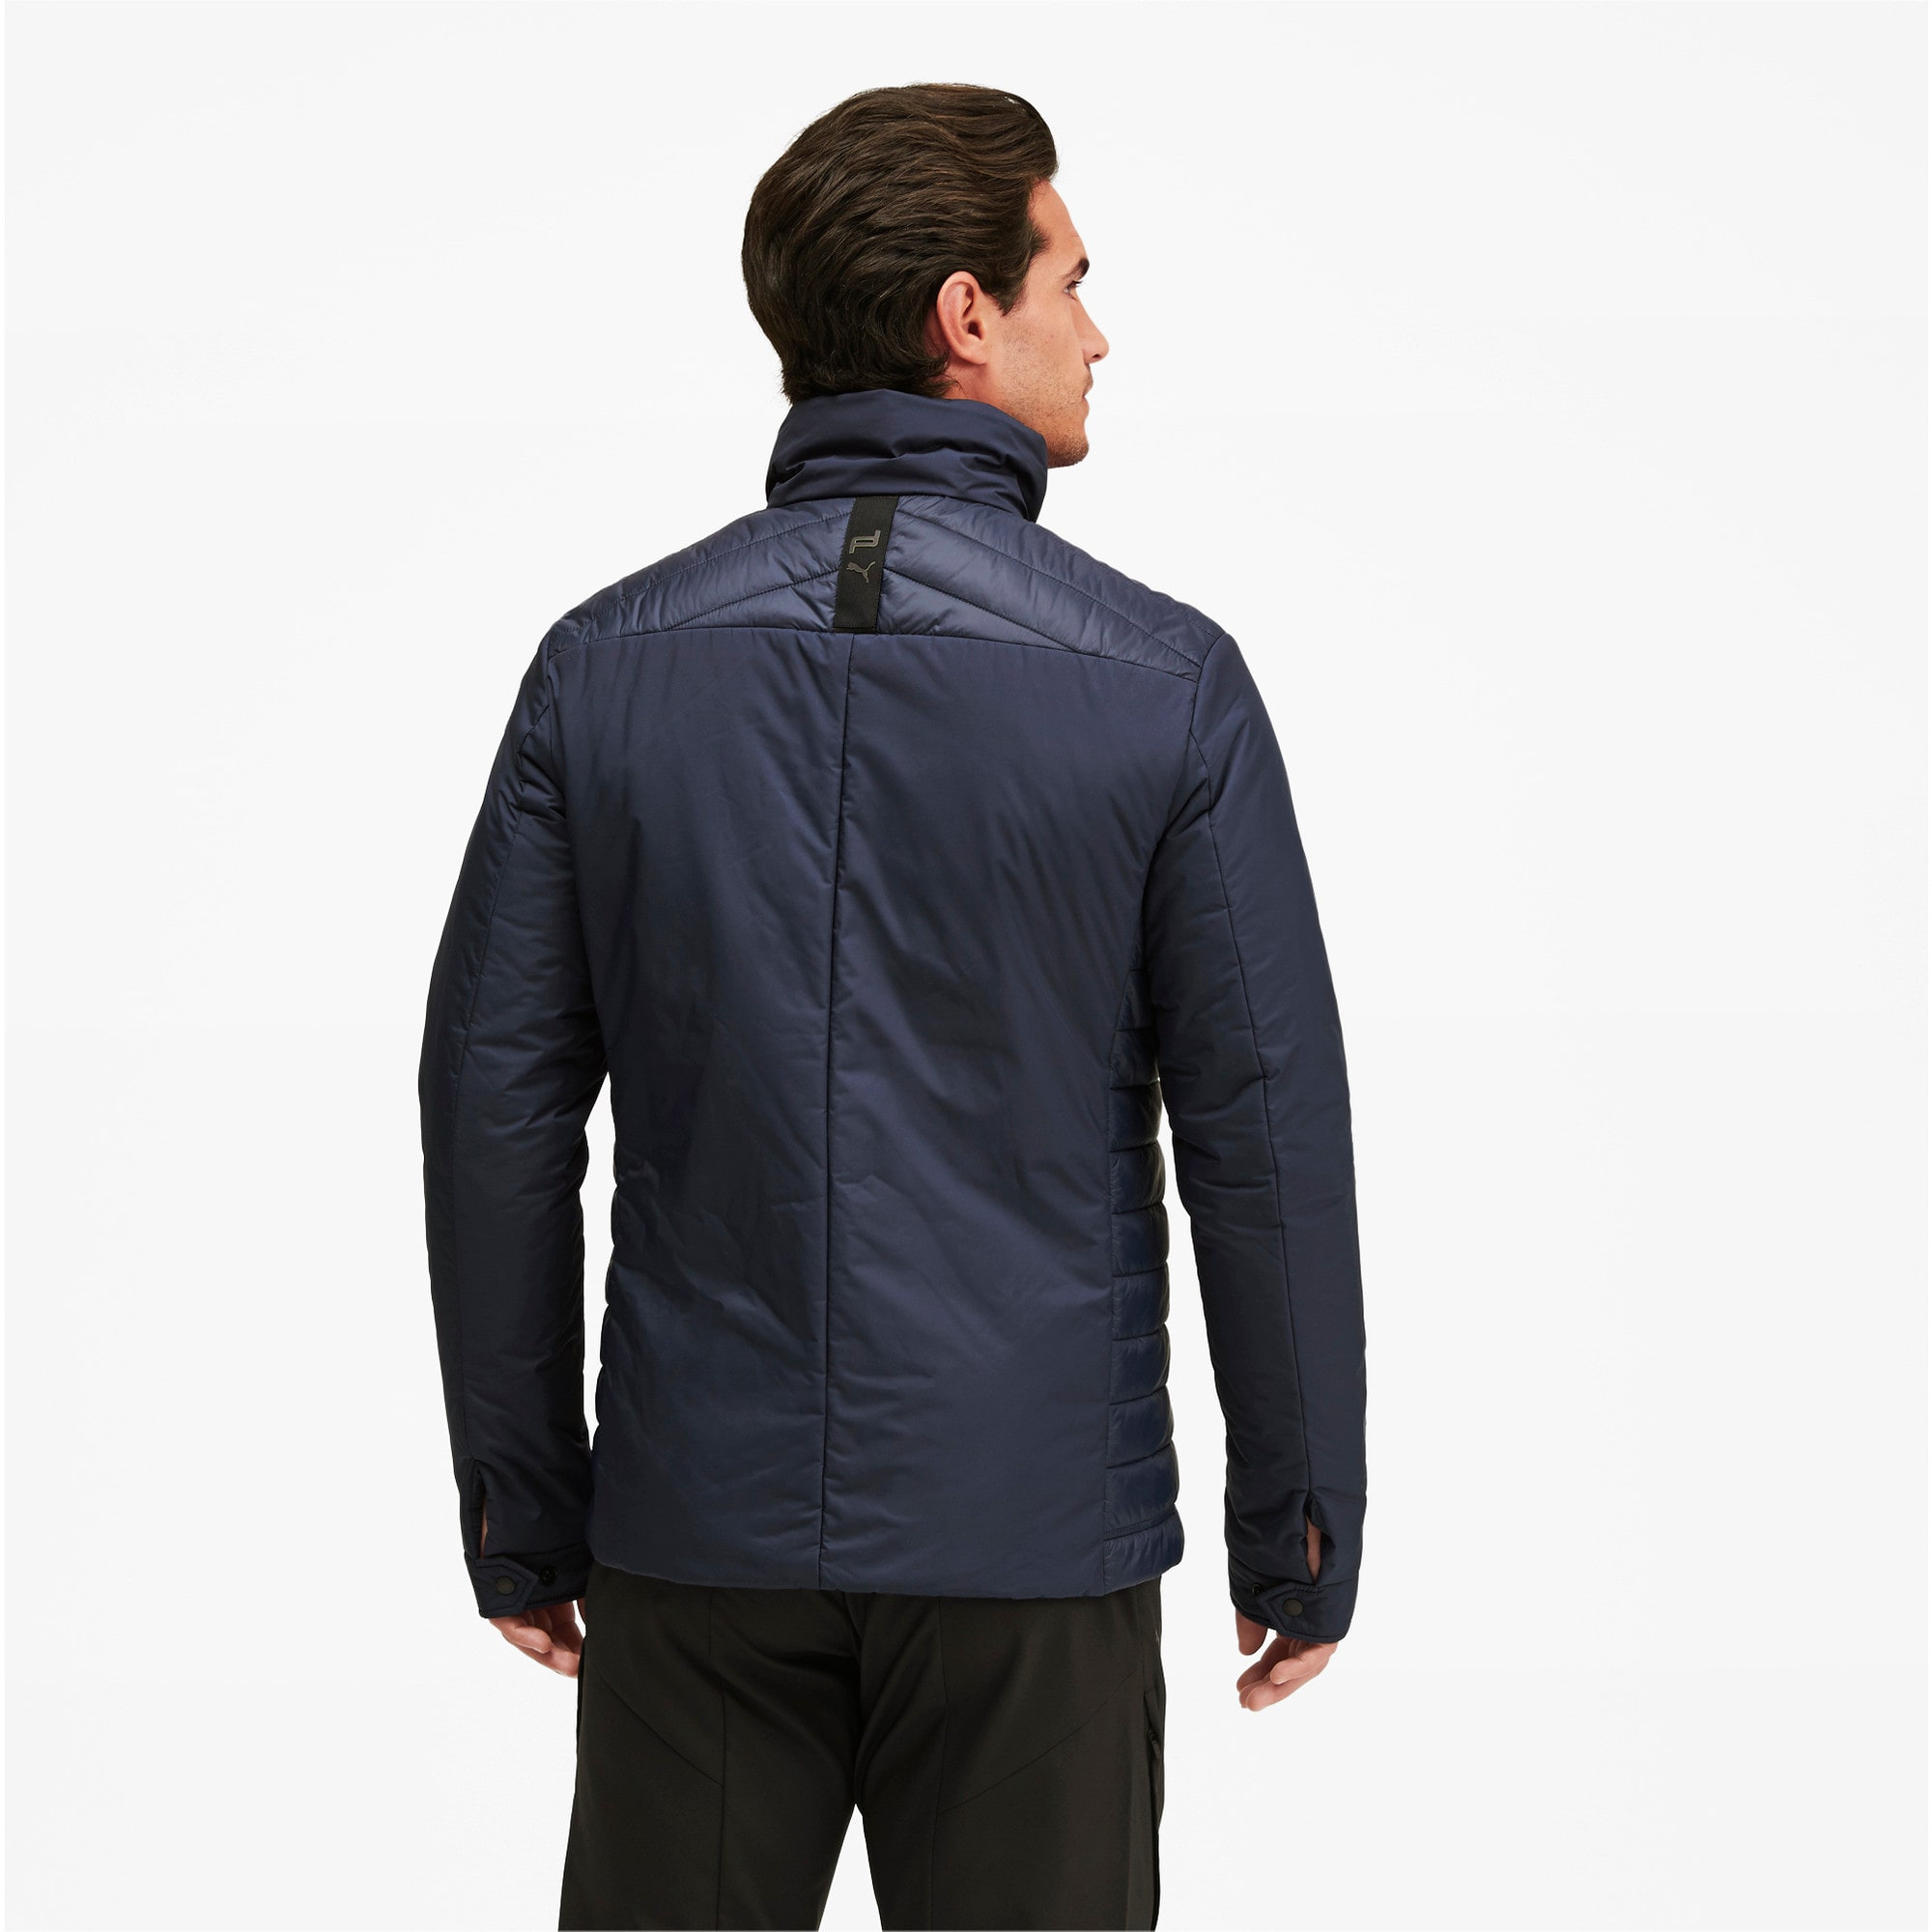 Thumbnail 2 of Porsche Design Men's Racing Jacket, Navy Blazer, medium